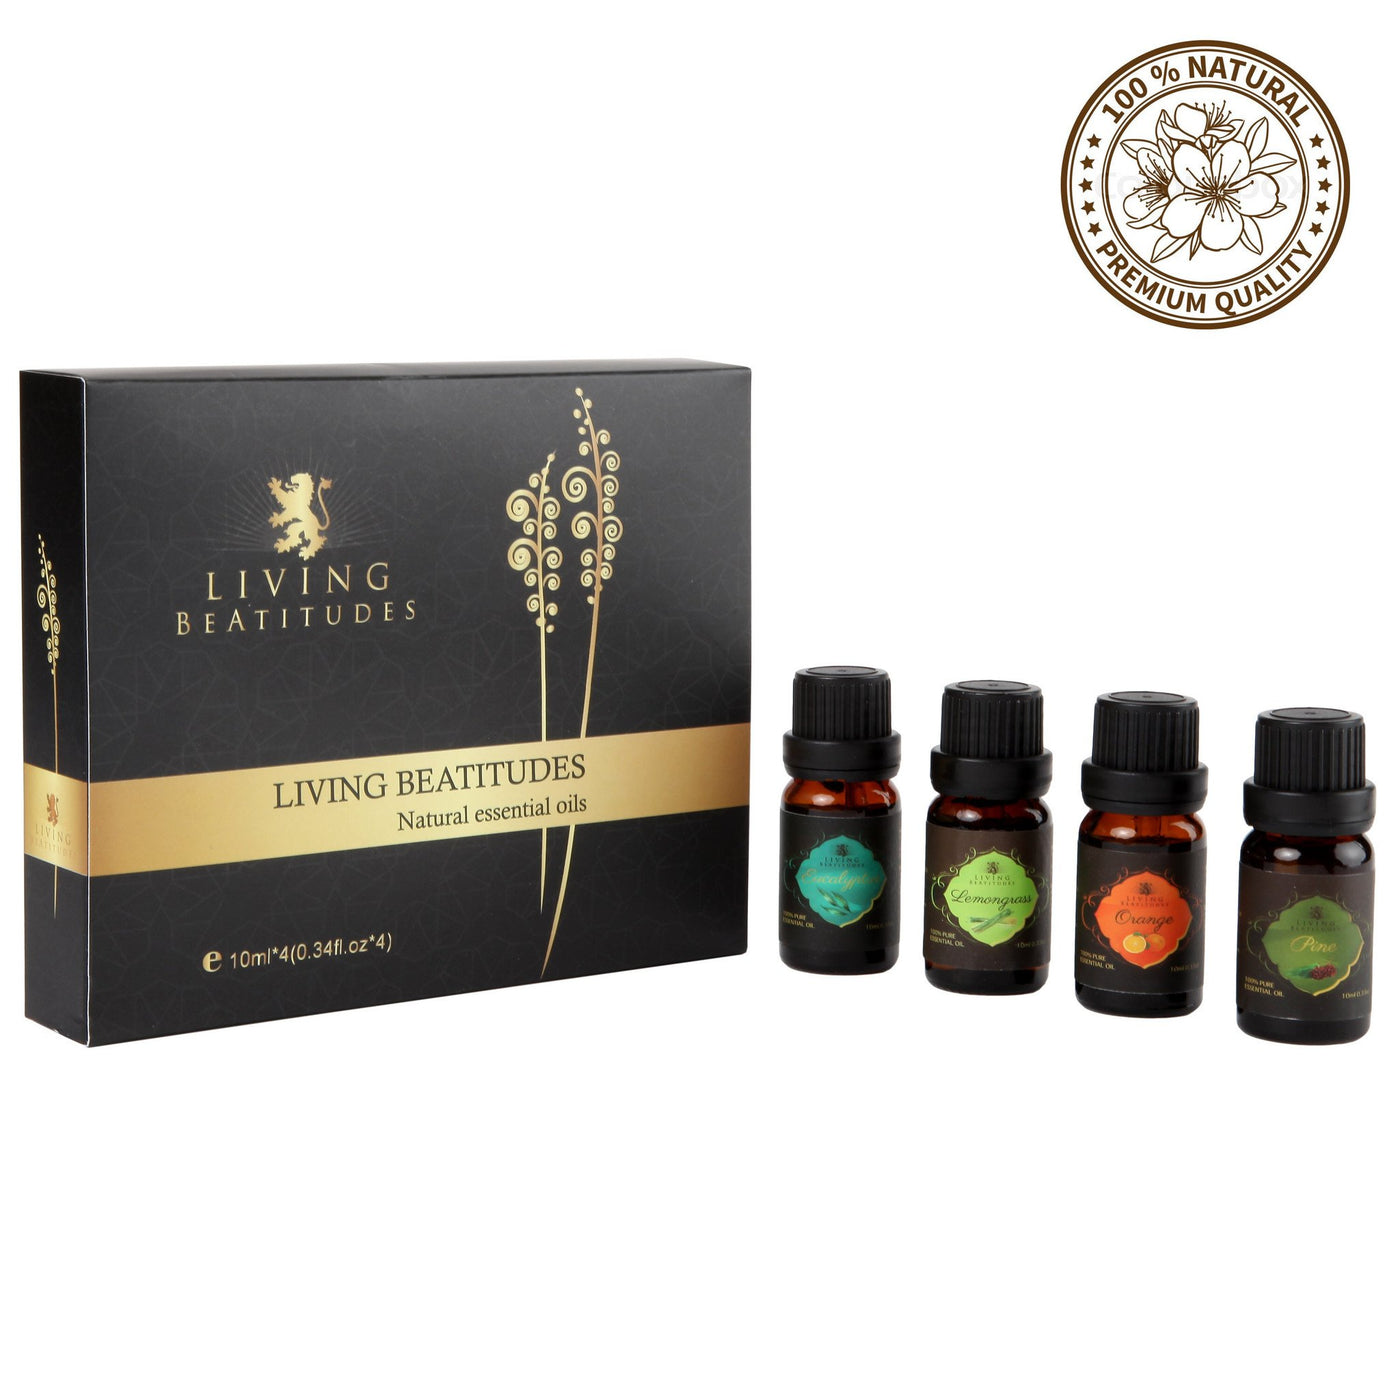 Aromatherapy Essential Oils | 4x10ml (Eucalyptus, Lemongrass, Orange, Pine)